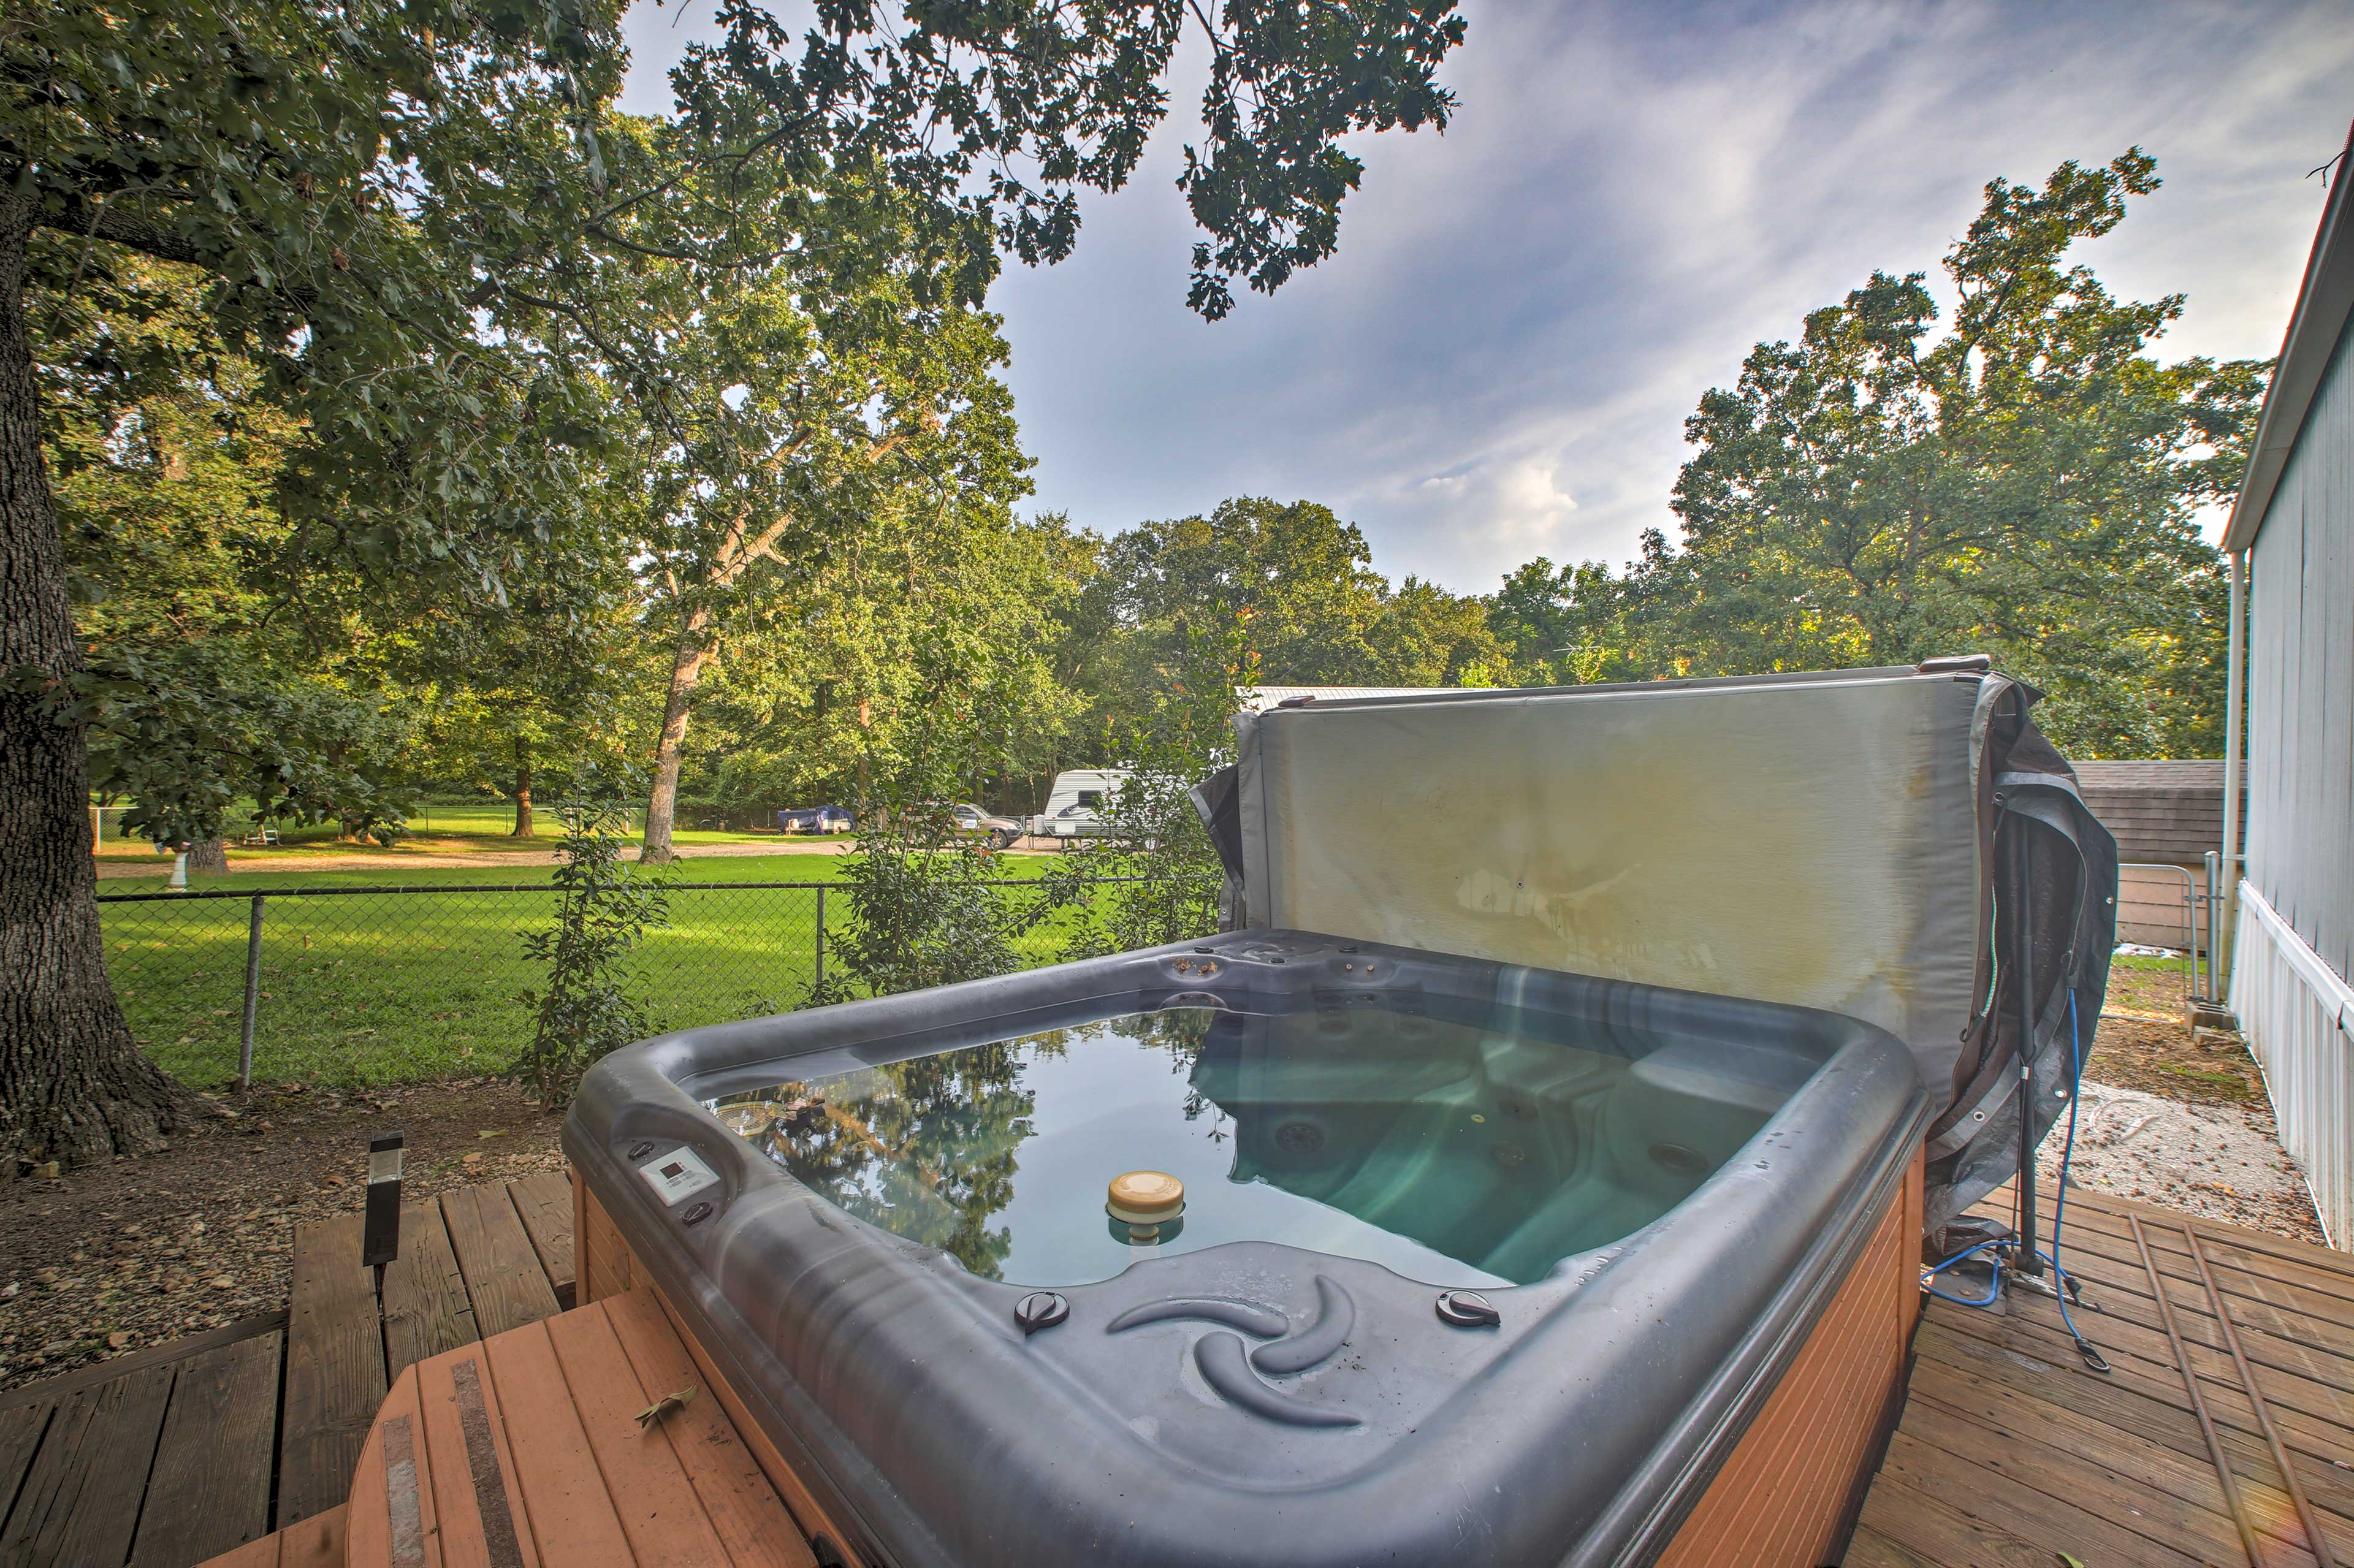 Follow your al fresco meal with a dip in the private hot tub.